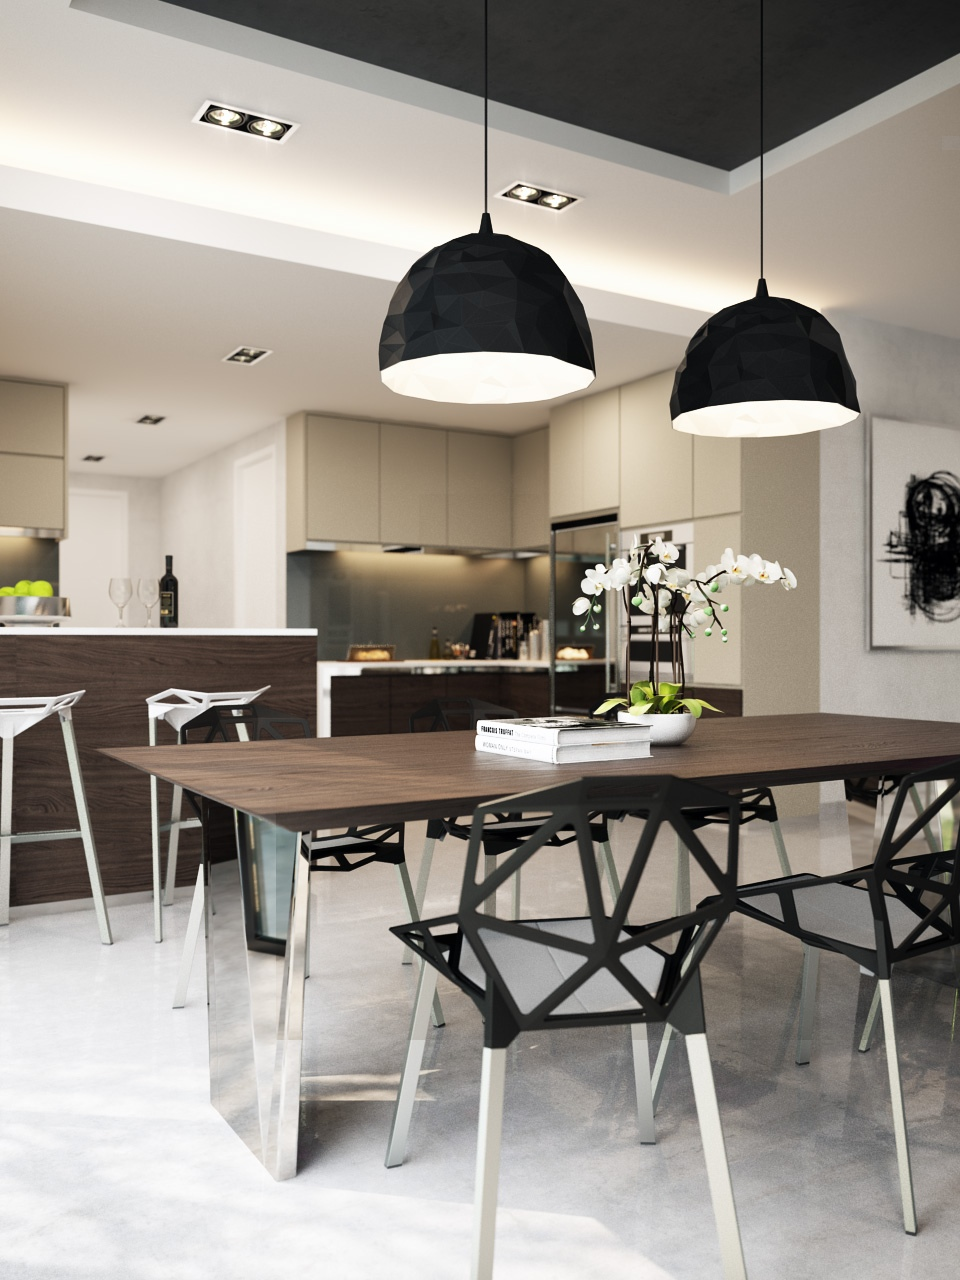 6 Dining Room Color Scheme Ideas For Small Space Roohome